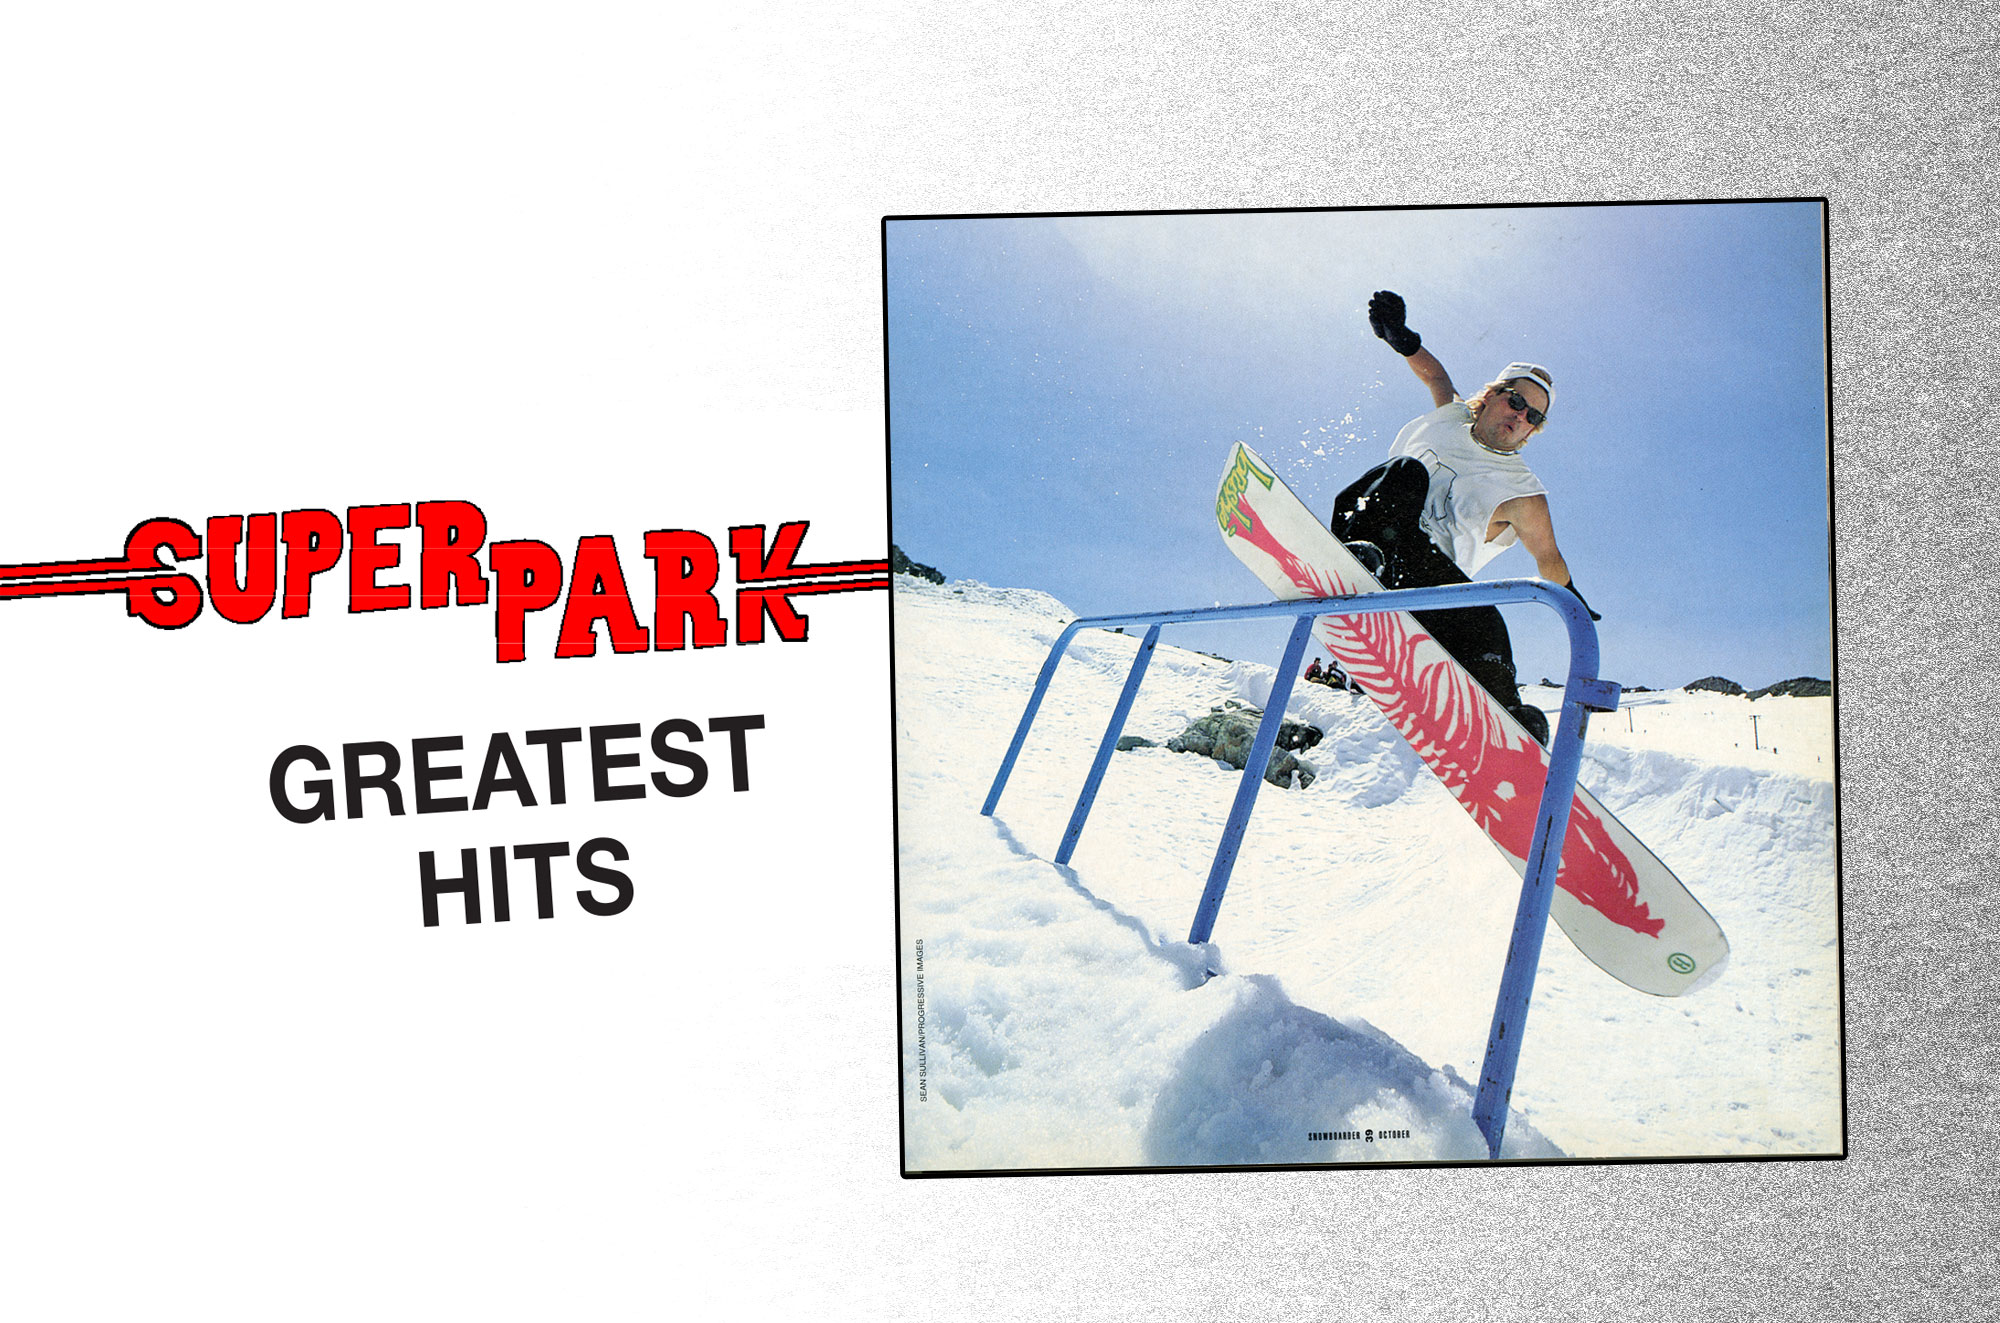 735712970d3a Superpark has long been synonymous with never before seen tricks and  terrain